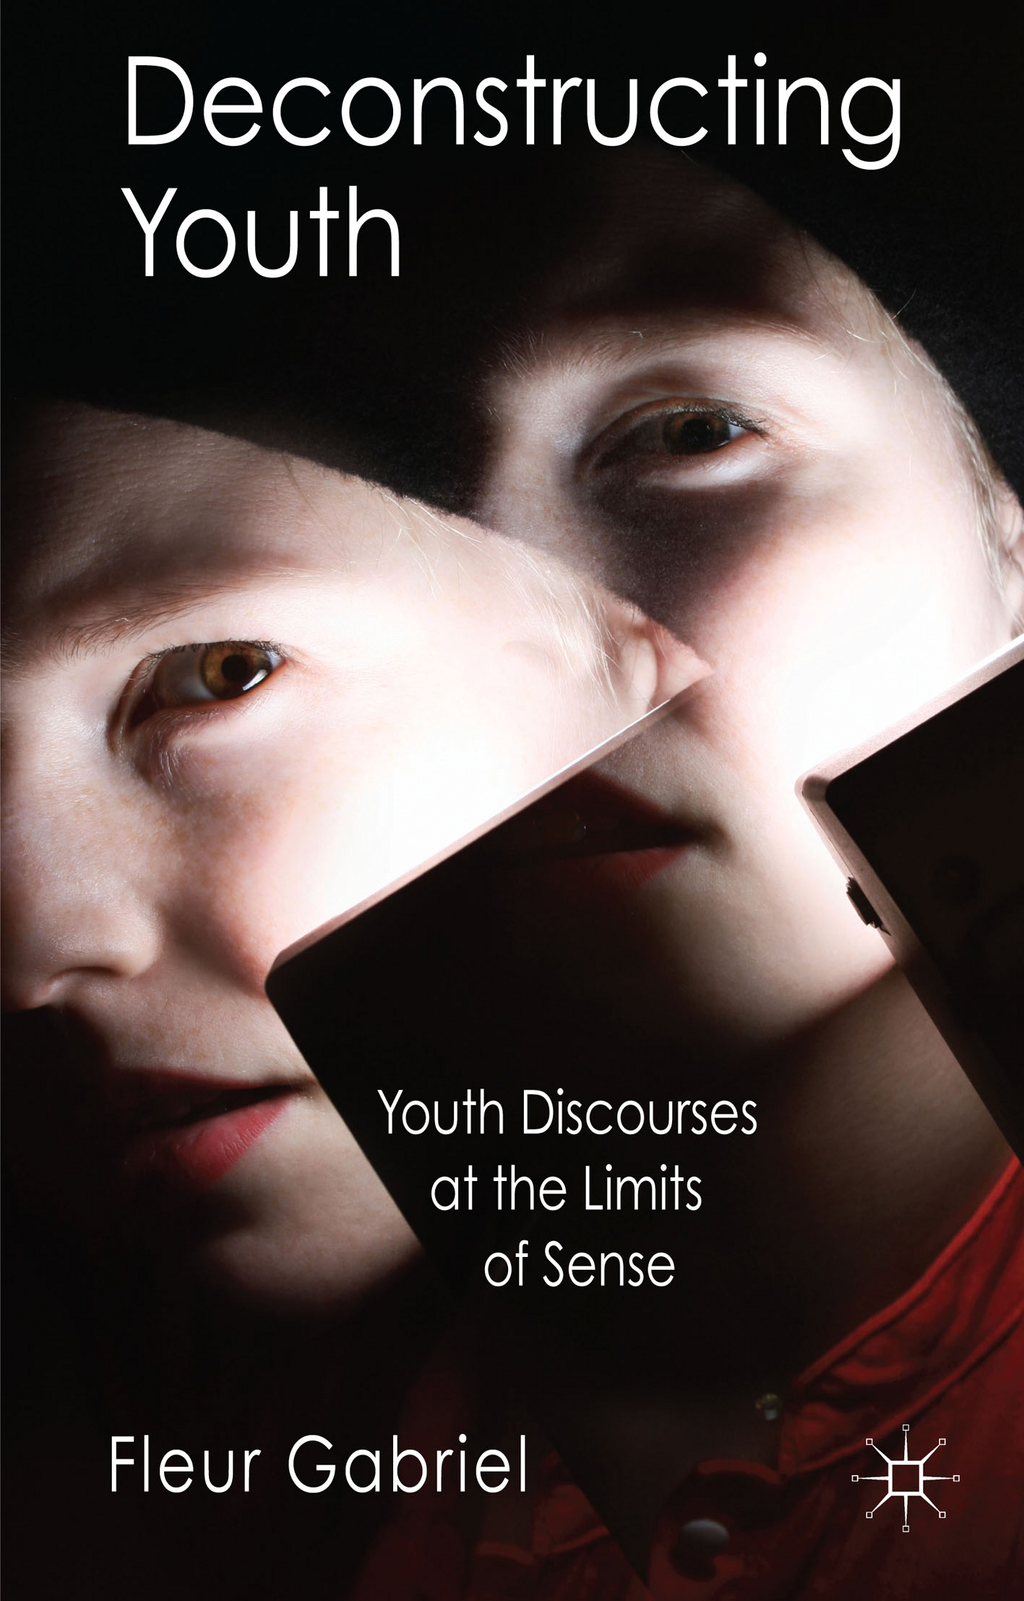 Deconstructing Youth Youth Discourses at the Limits of Sense